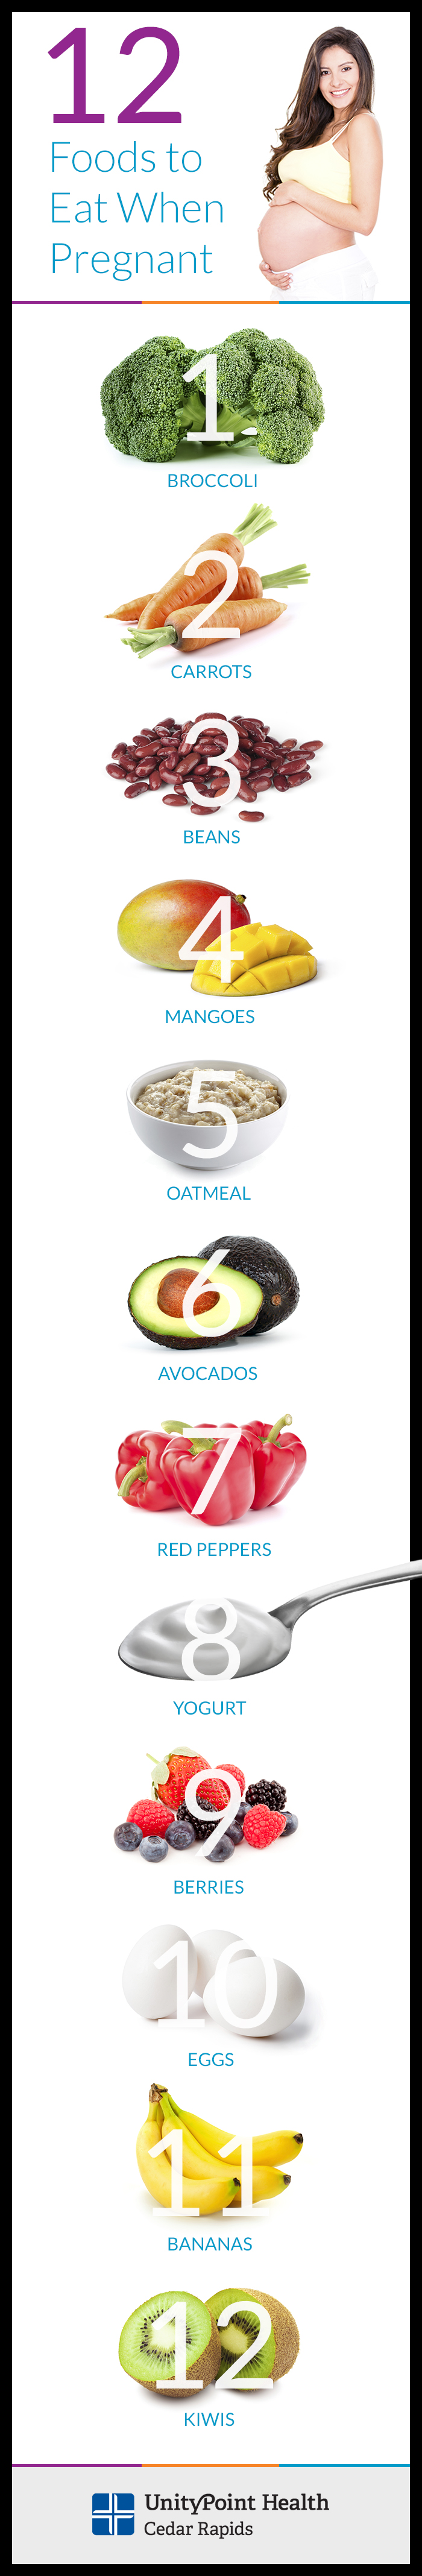 12 Foods to Eat When Pregnant #infographic